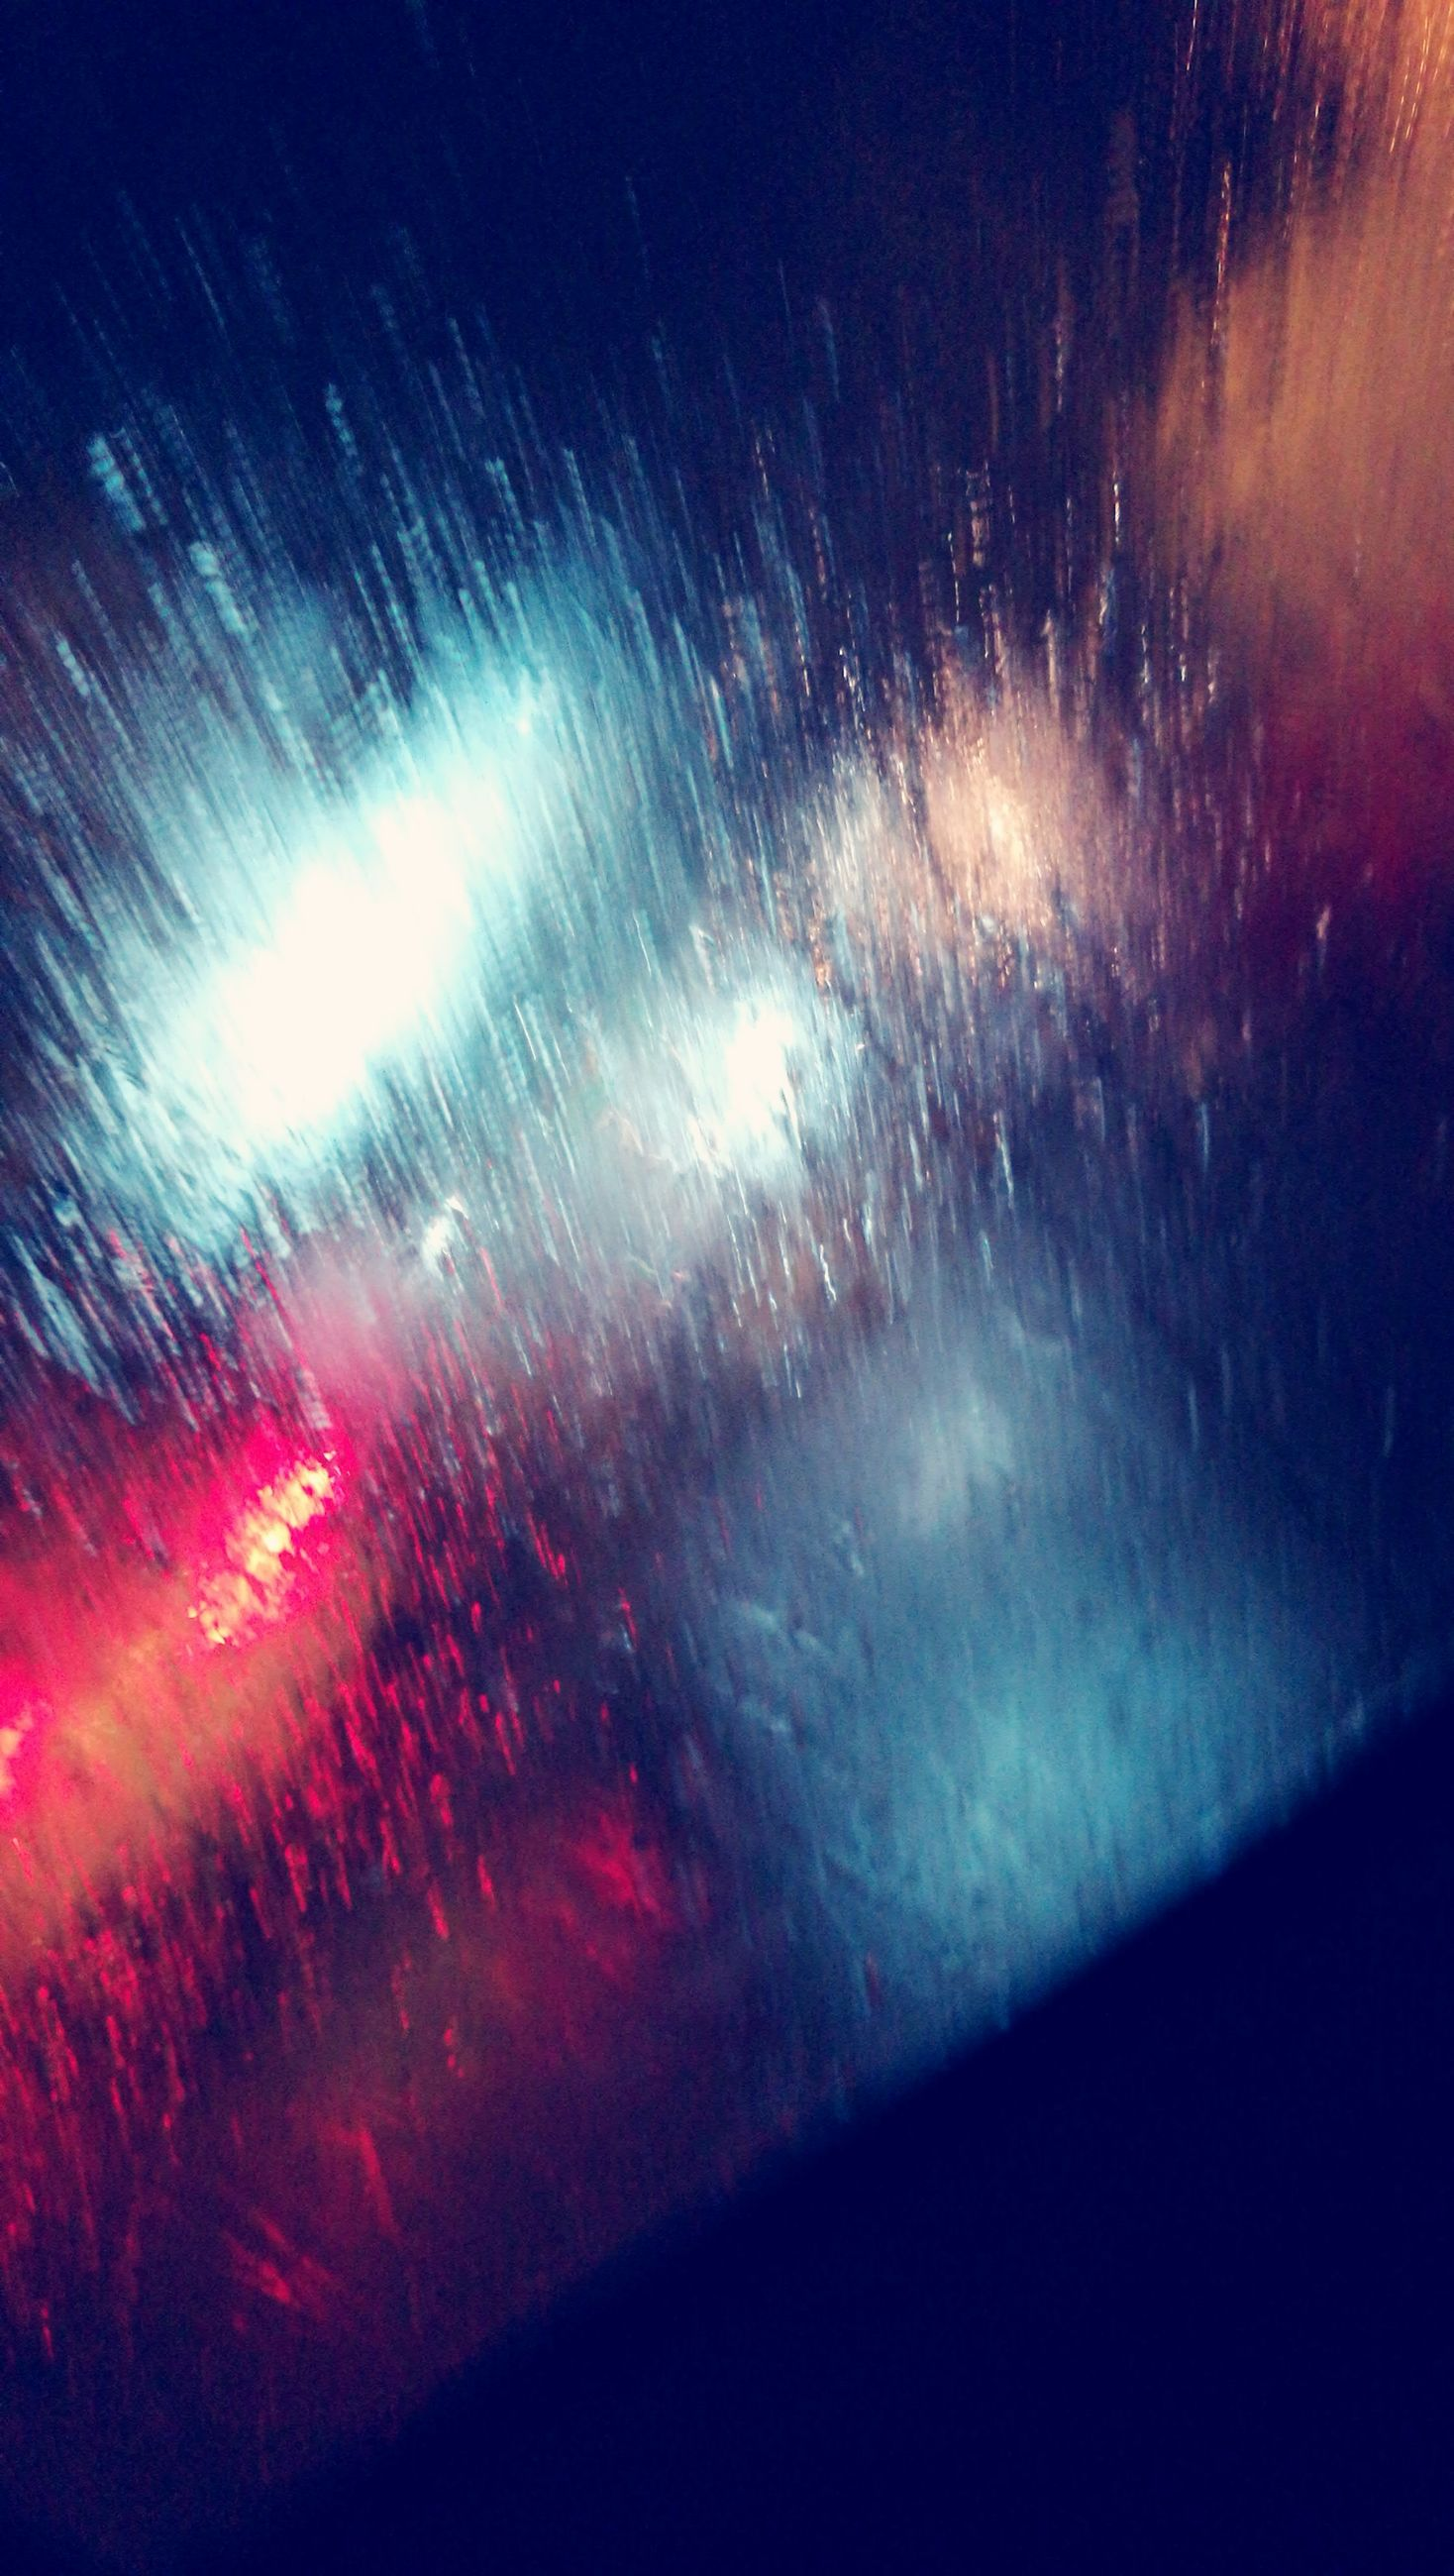 weather, night, backgrounds, no people, full frame, water, close-up, nature, outdoors, sky